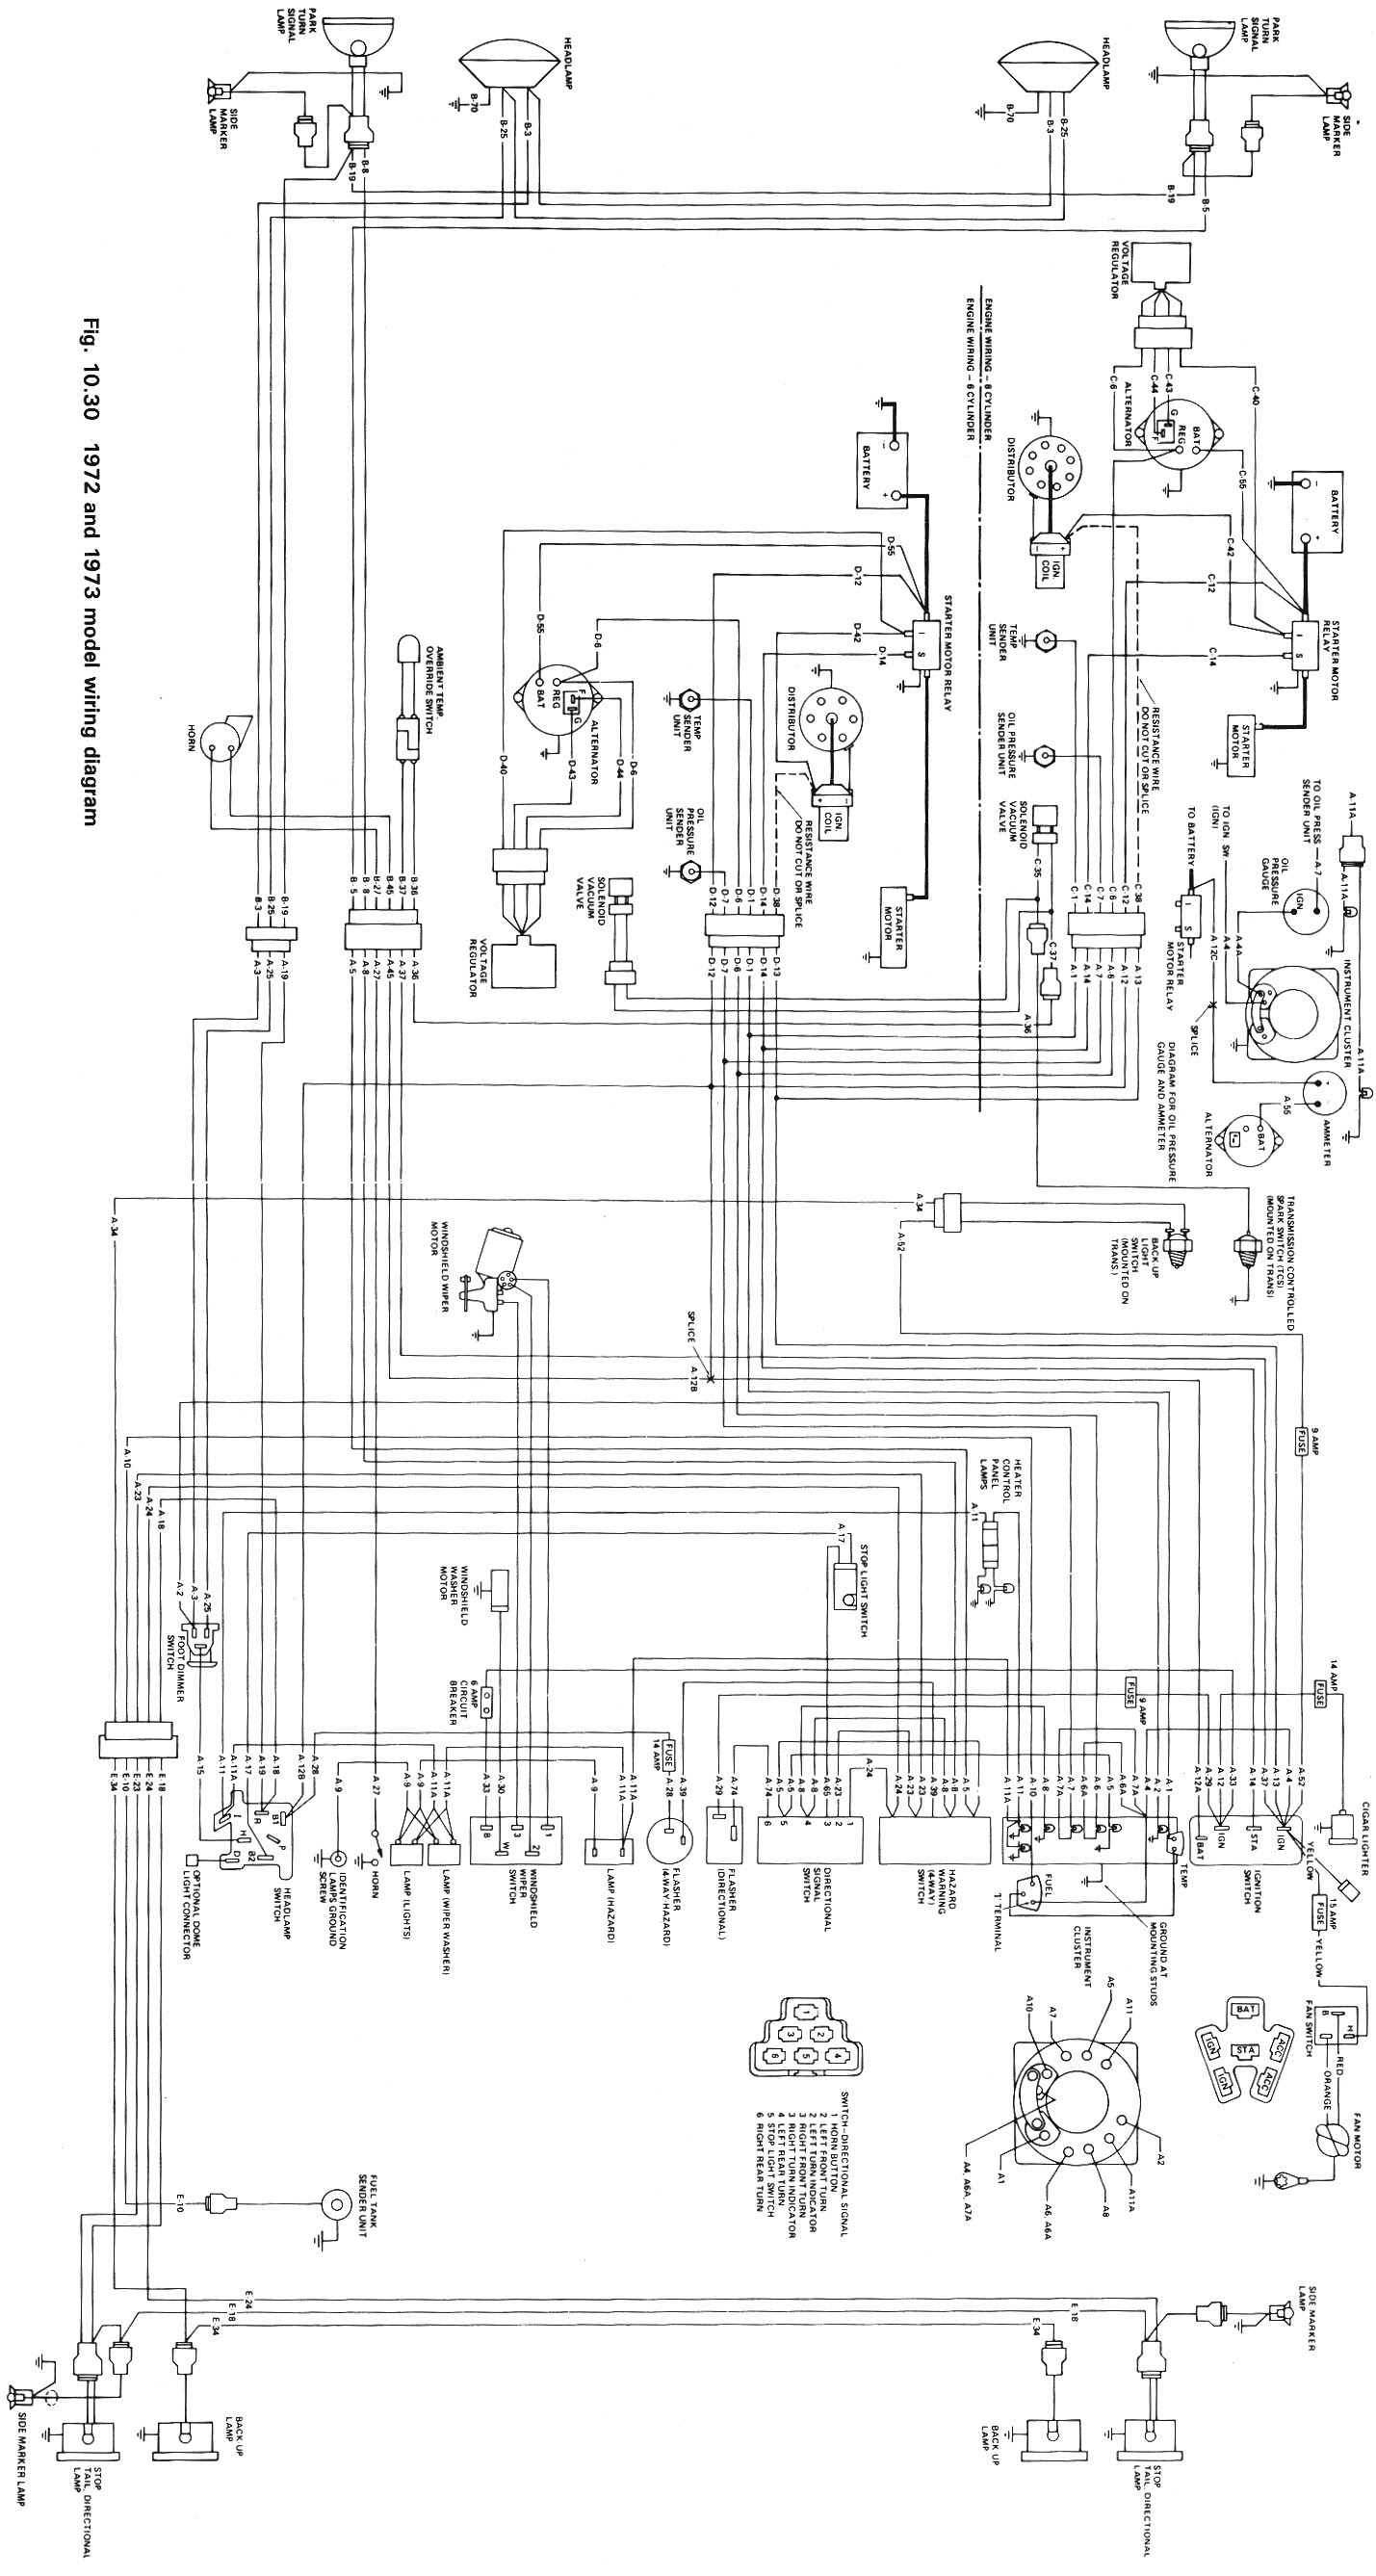 1987 Jeep Cj7 Wiring - Rebel Starter Wire Diagram -  jaguars.ajingemut.decorresine.itWiring Diagram Resource